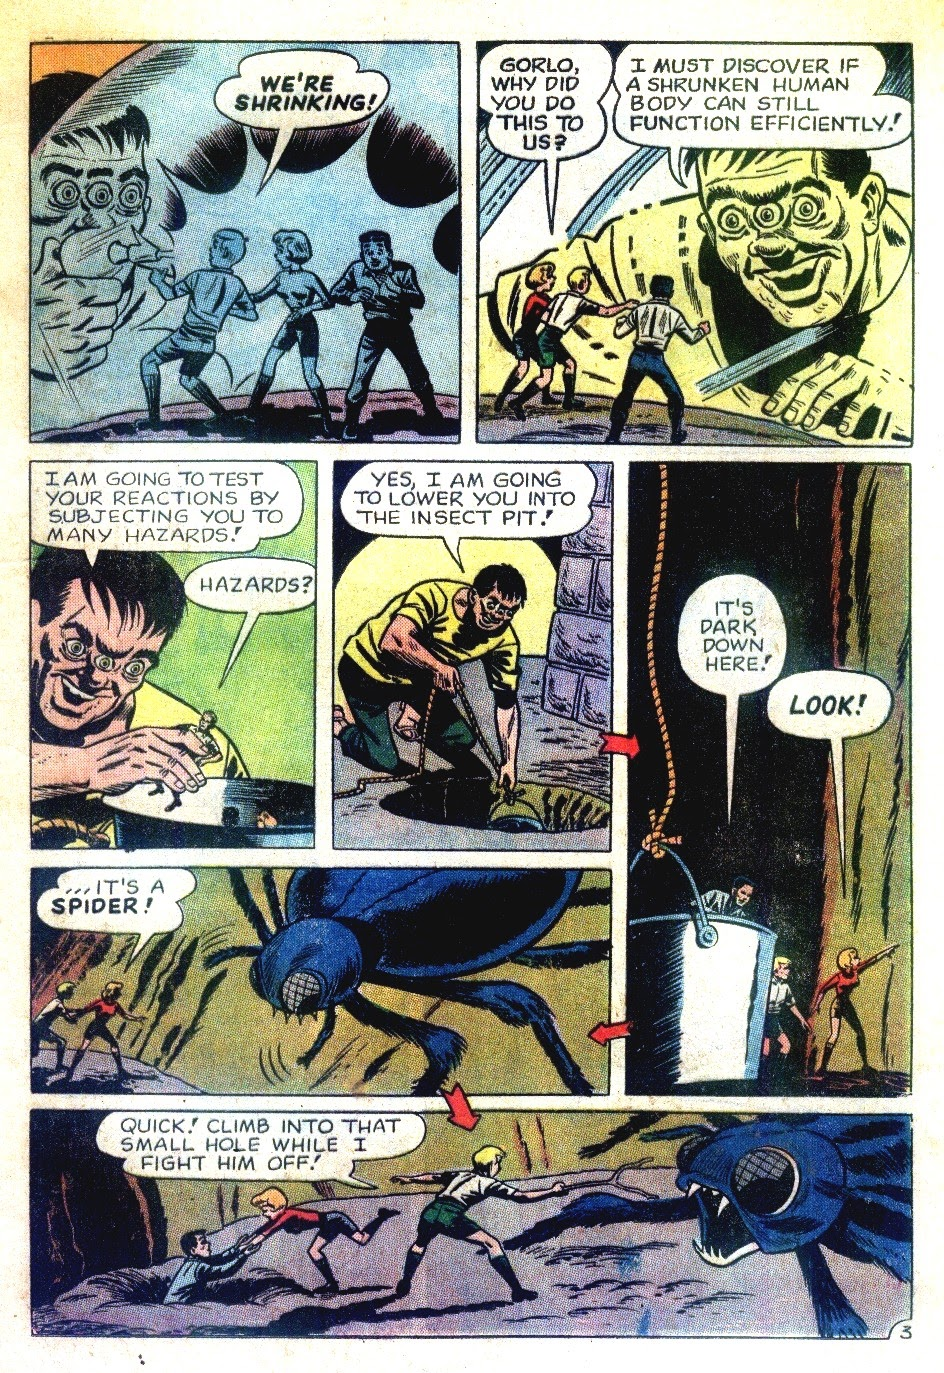 Read online Tales Calculated to Drive You Bats comic -  Issue #7 - 5